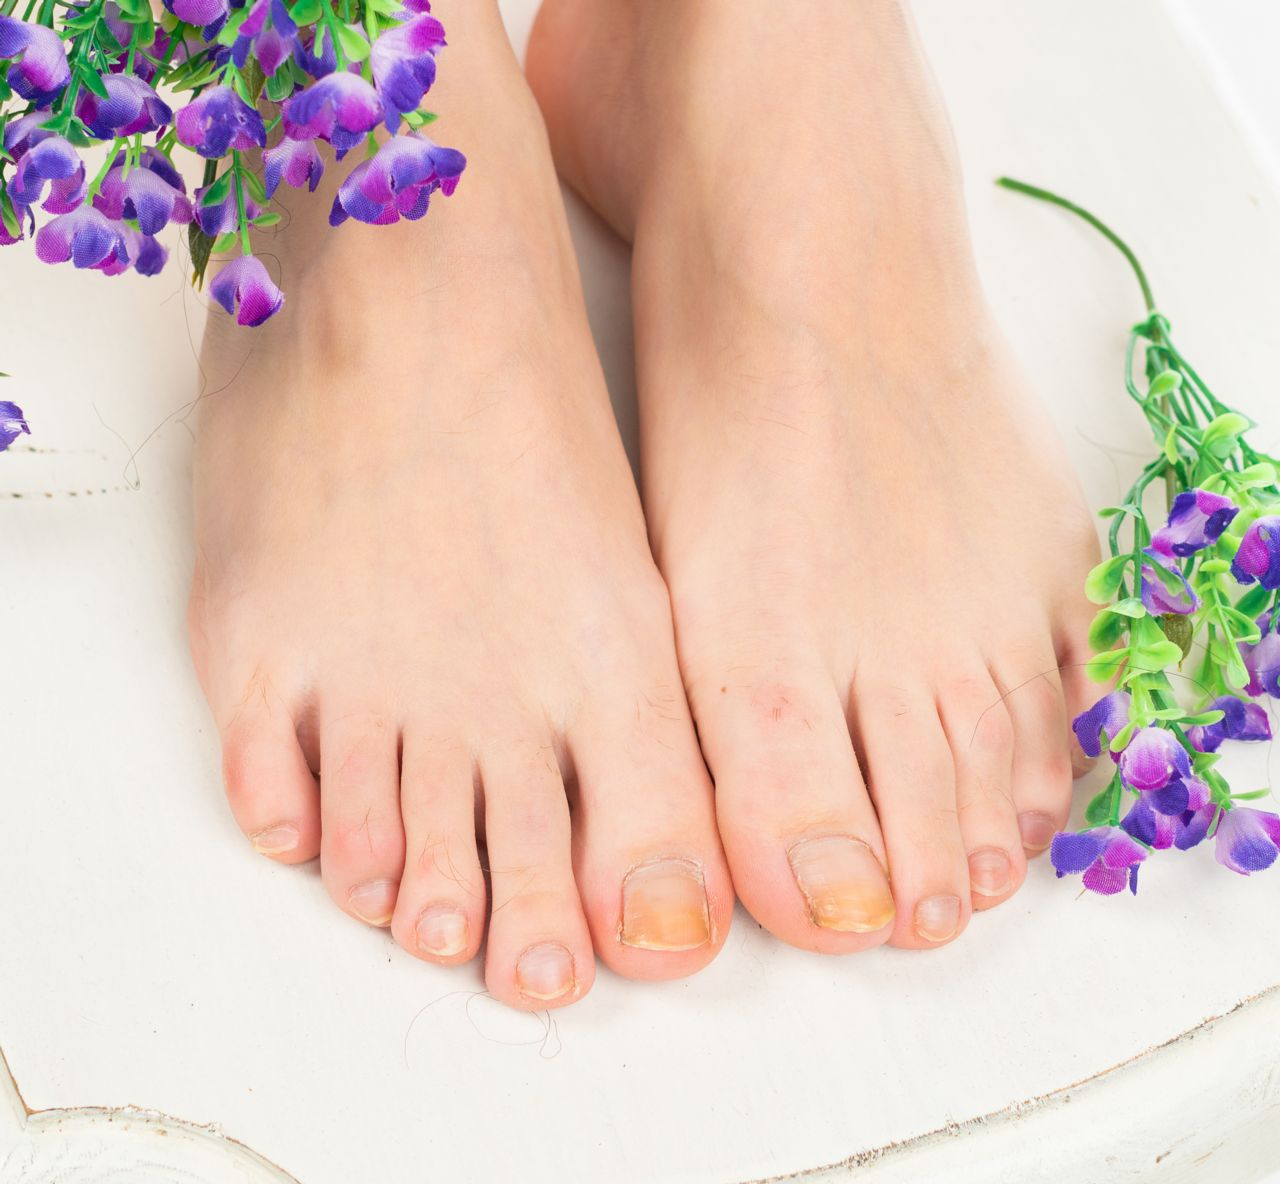 Not only are fungal toenails unhealthy, they're embarrassing.